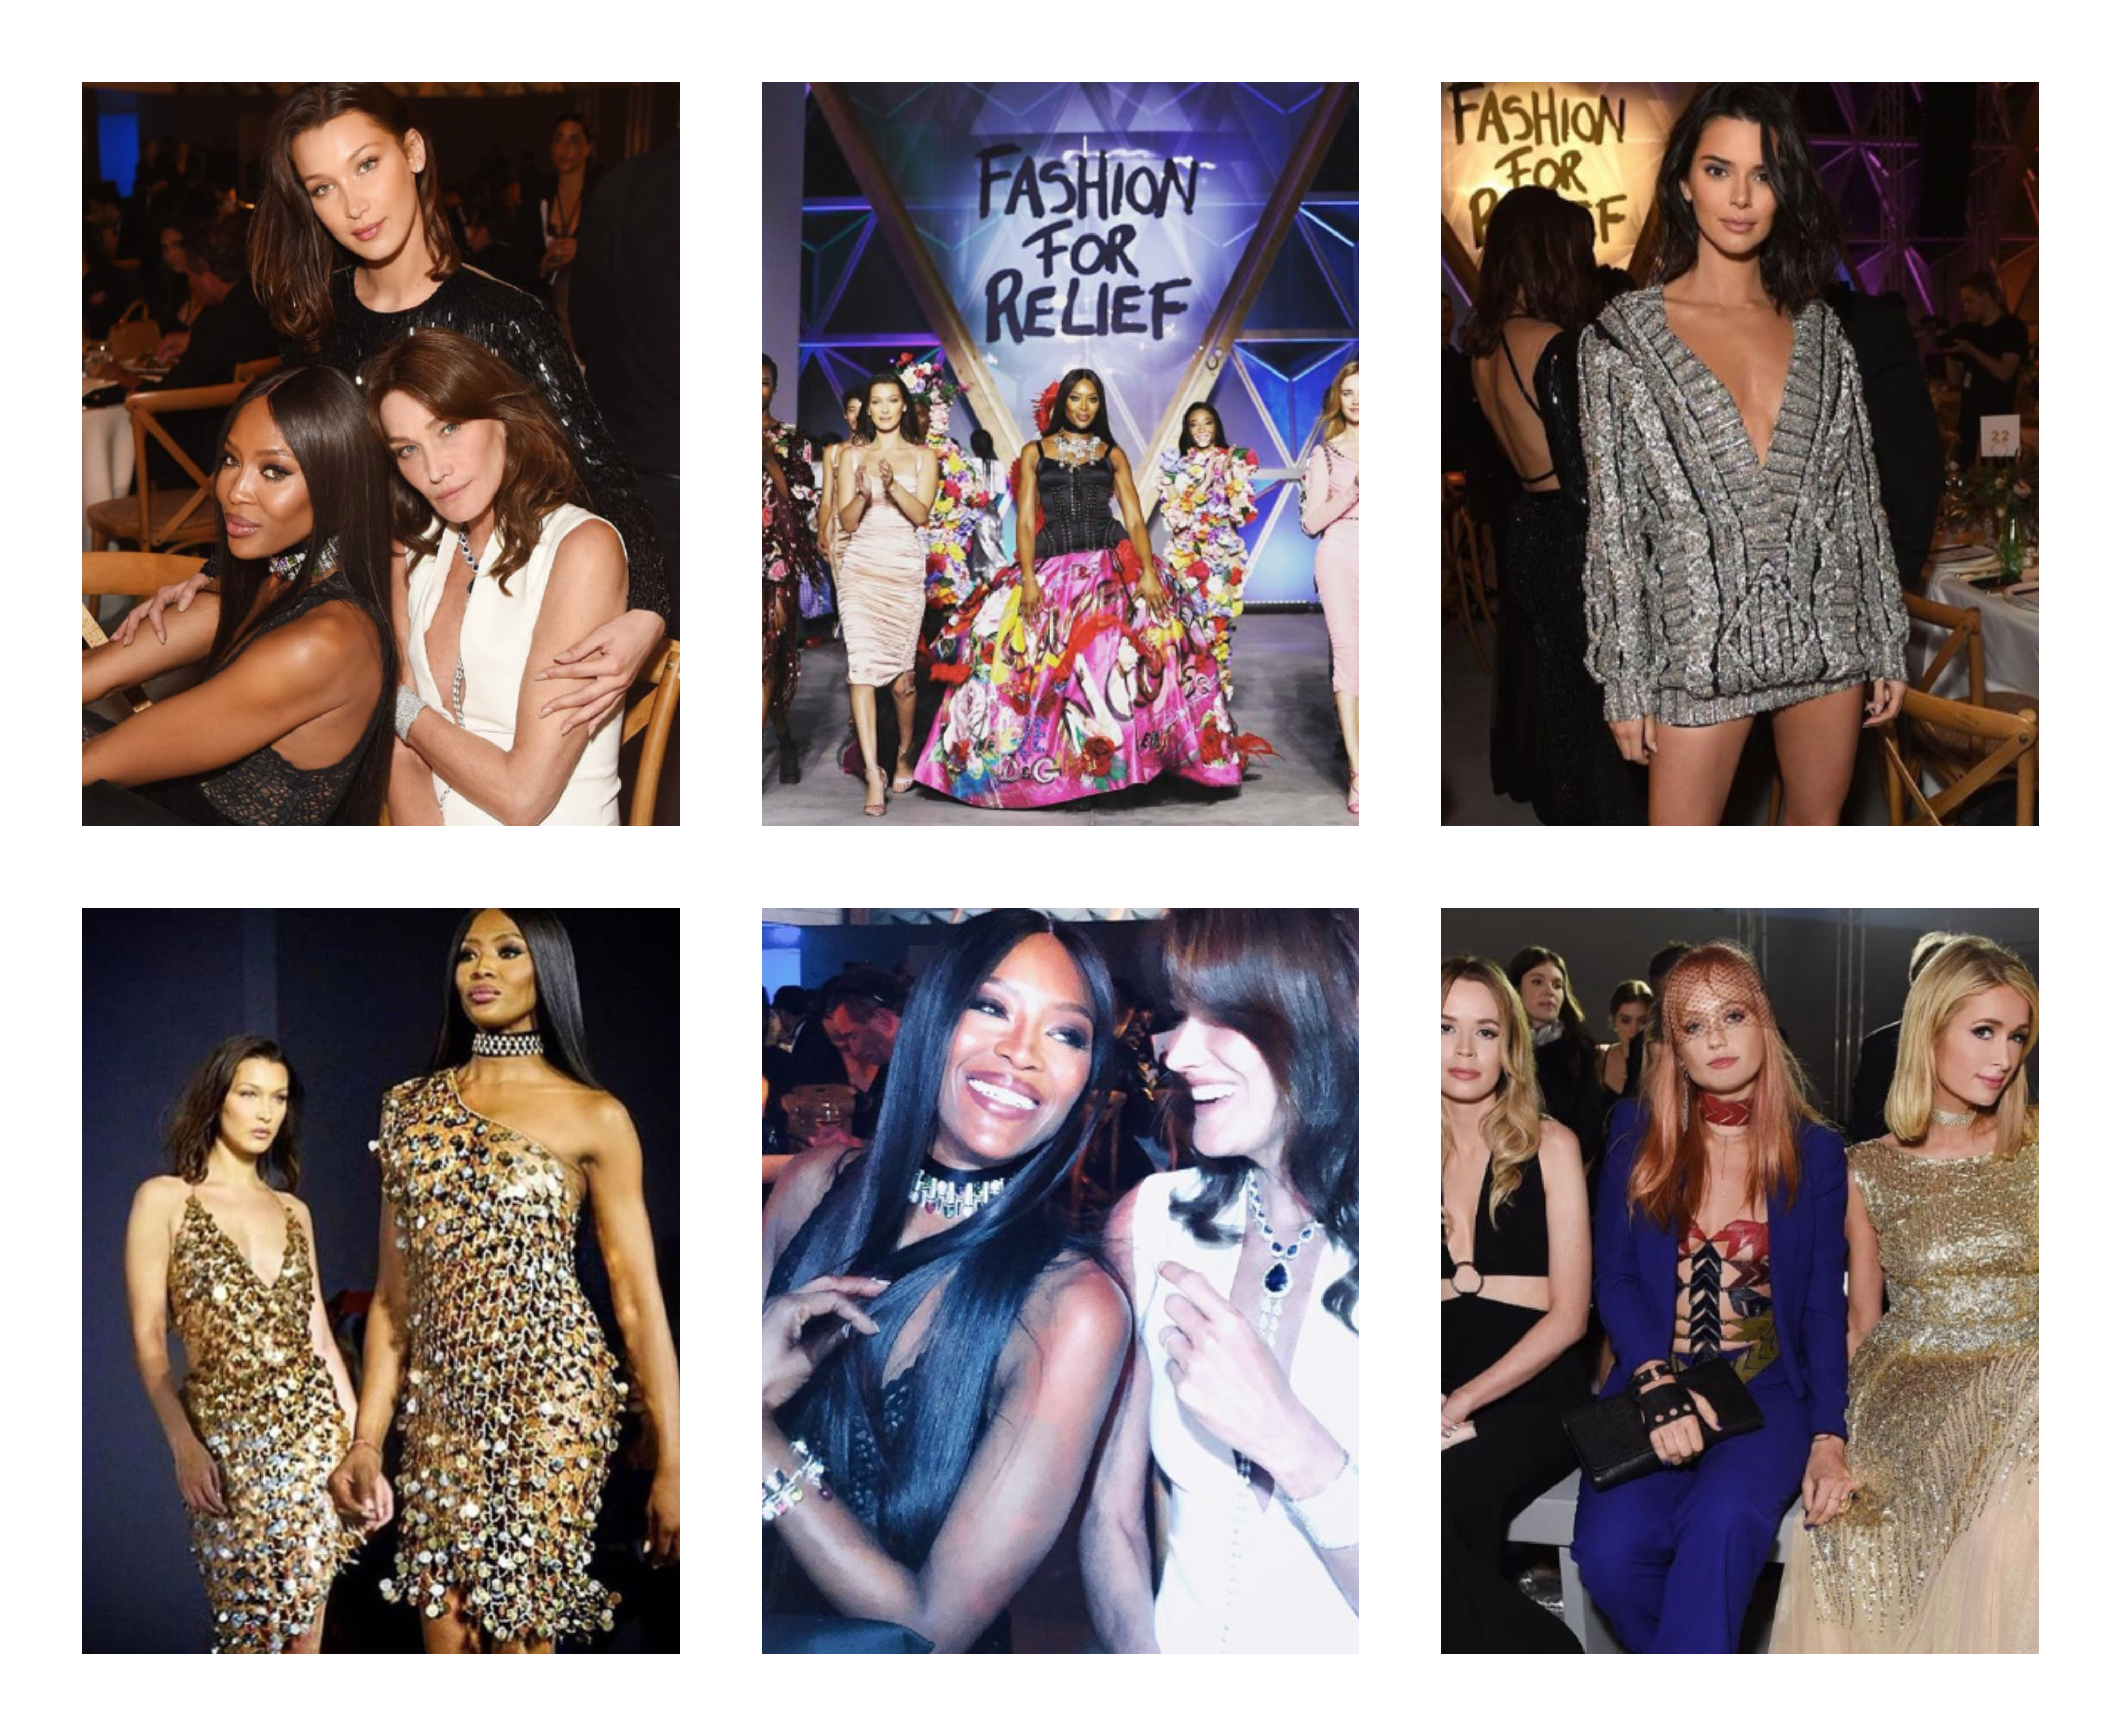 fashion-for-relief-naomi-campbell-cannes-2018-charity-fashion-show-bella-hadid-Instagram